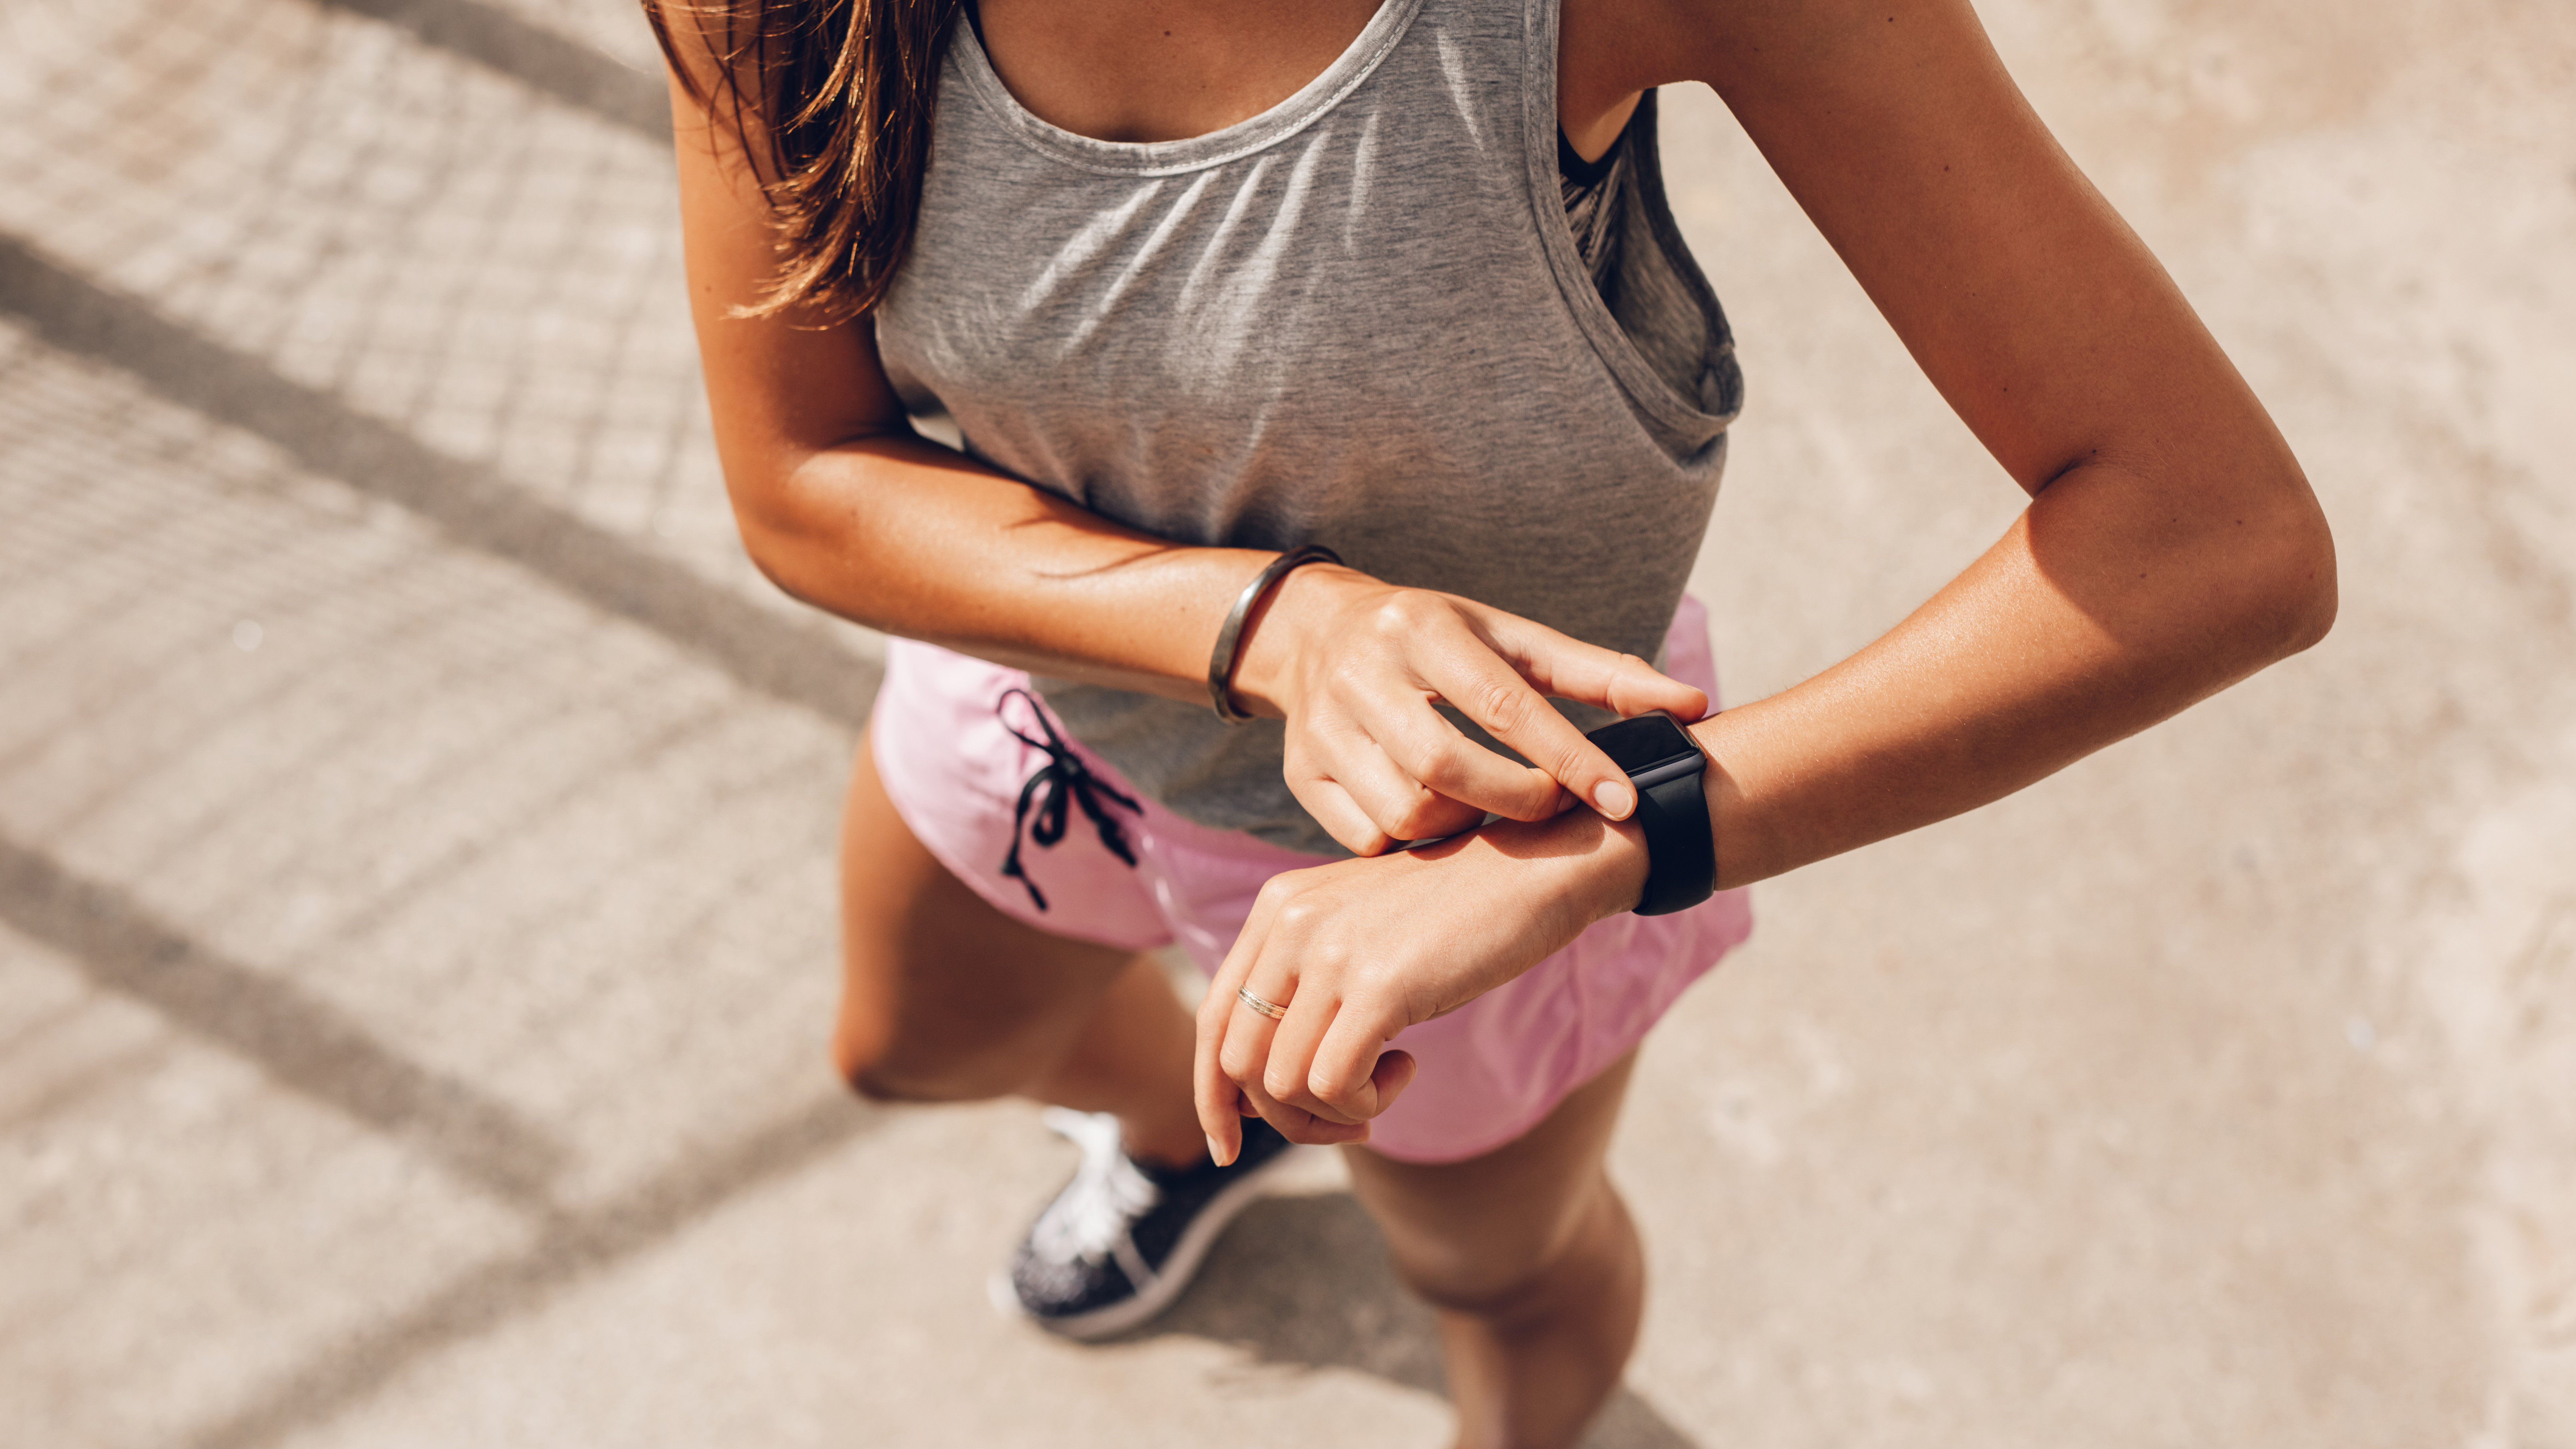 Health Monitors That Help You Get the Most Out of Your Favorite Workout